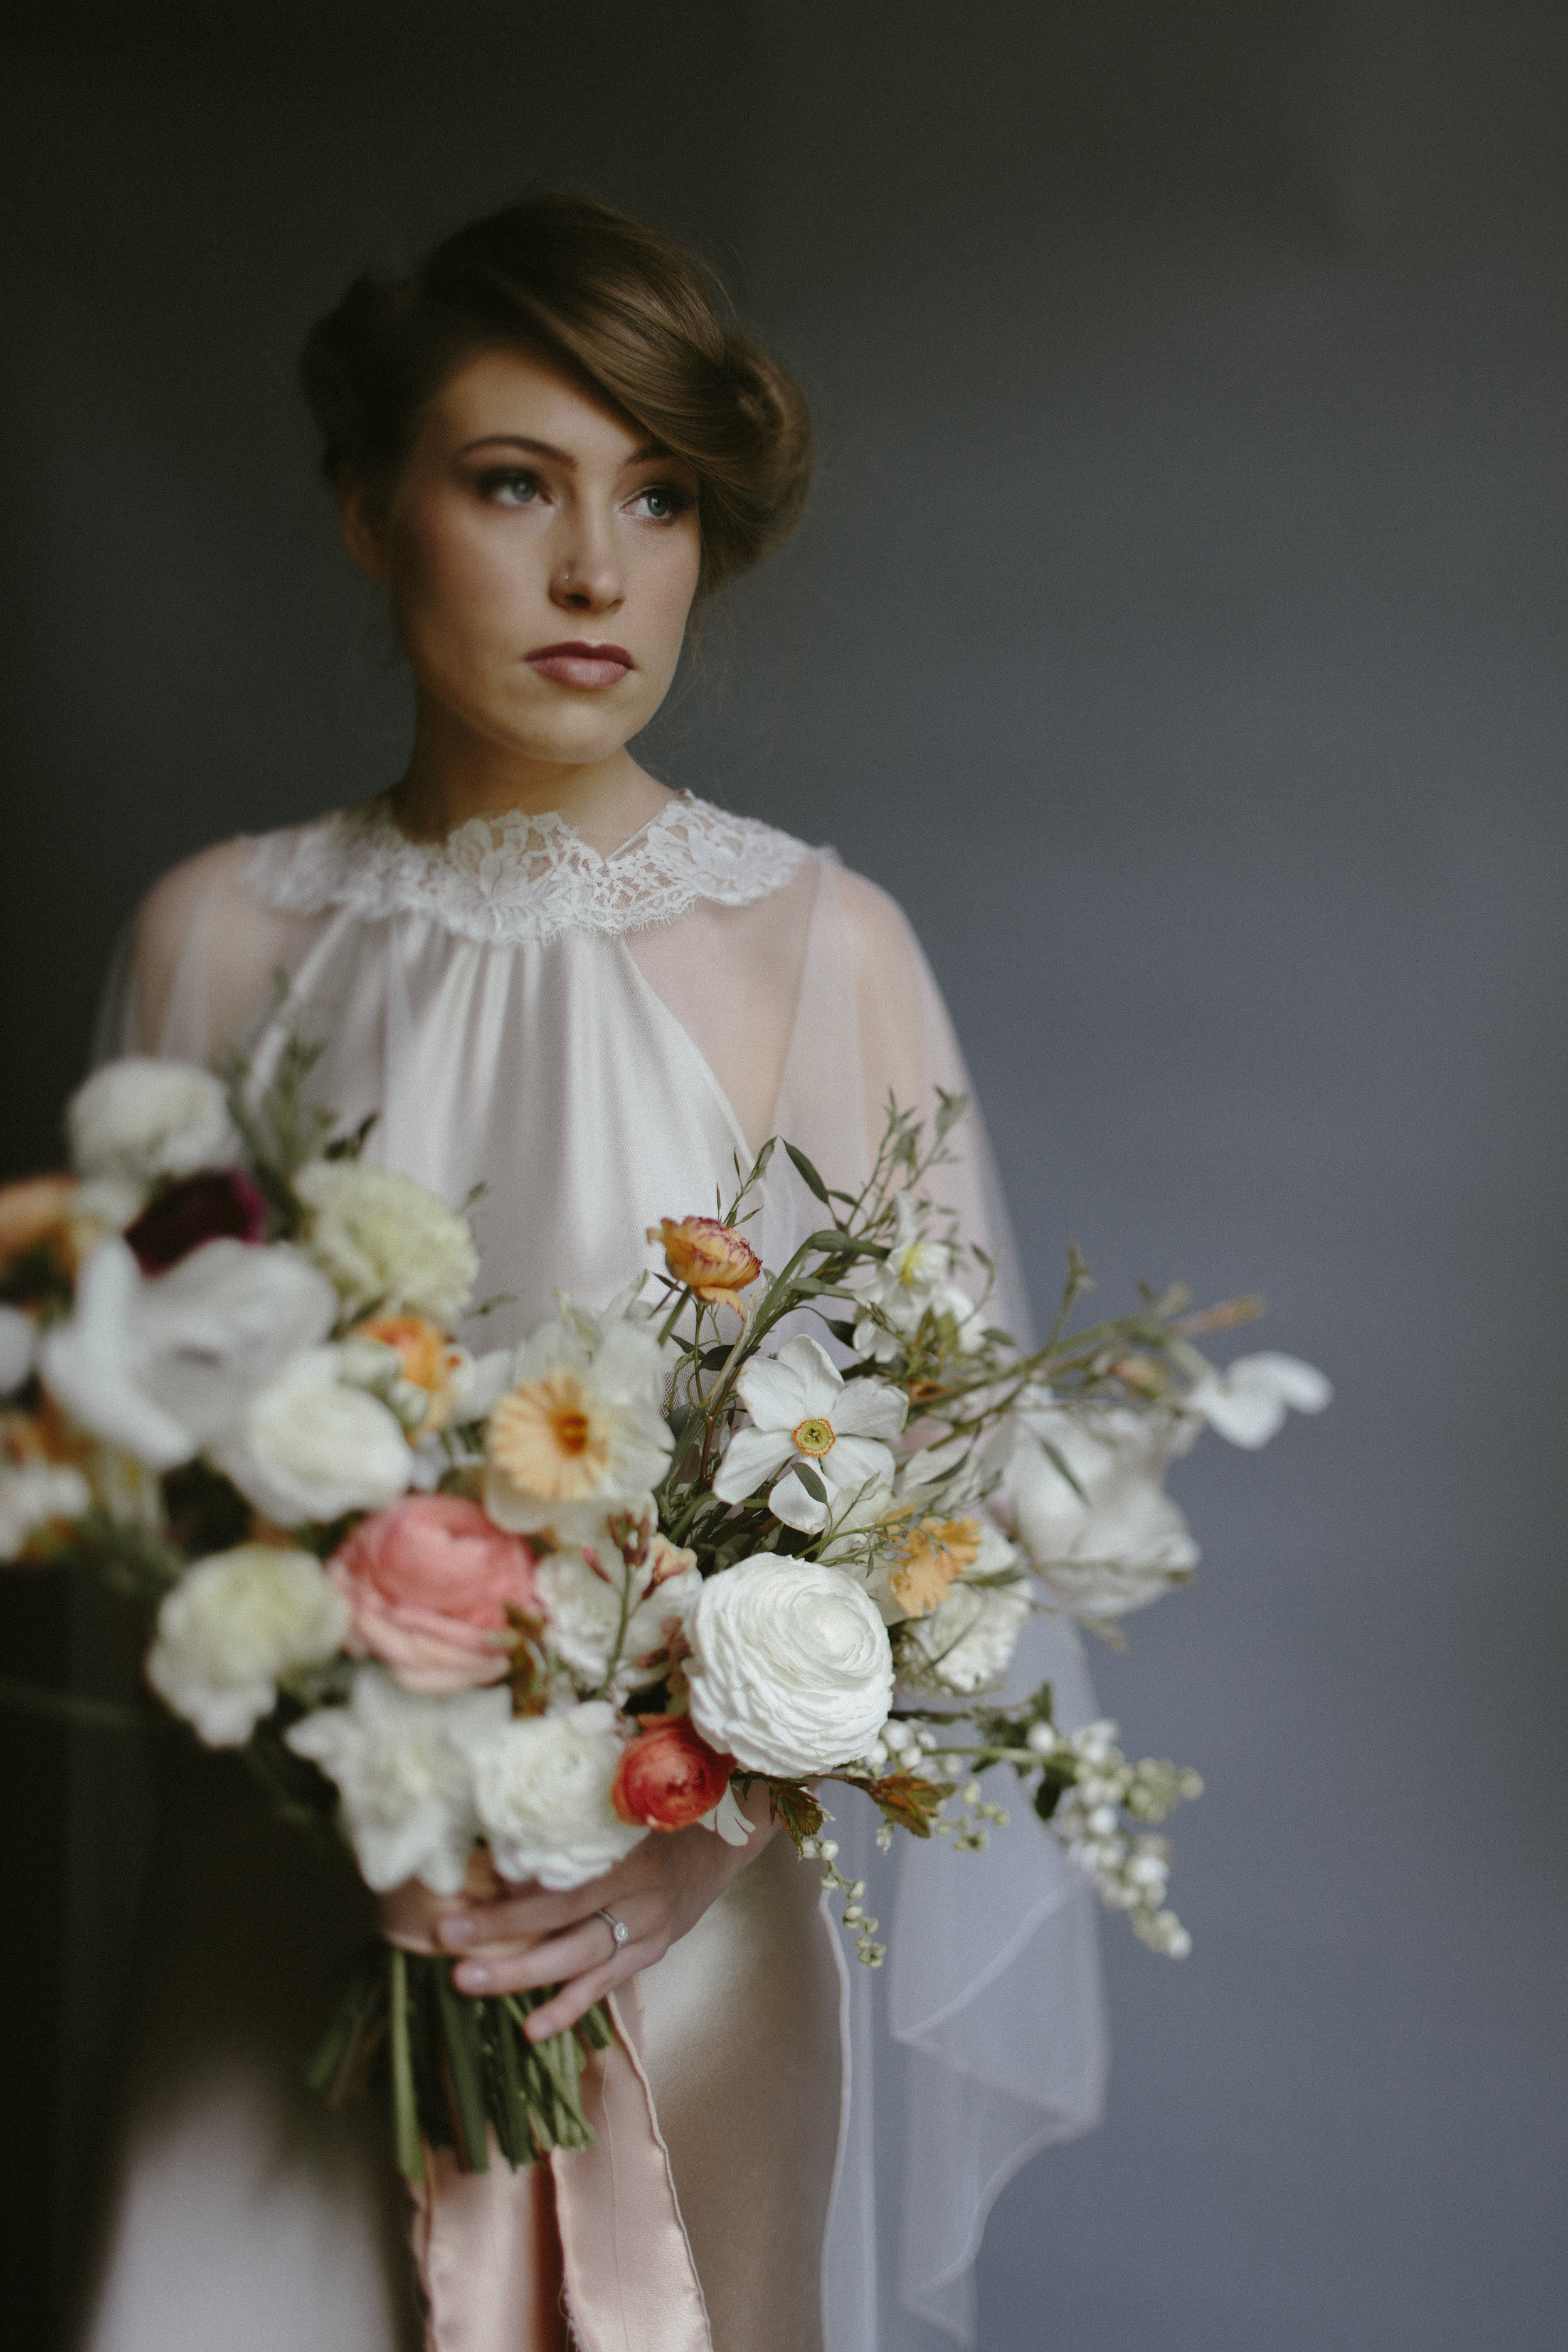 Agnes-and-bee-Kate-Beaumont-wedding-dresses-Ruth-Atkinson-13.jpg